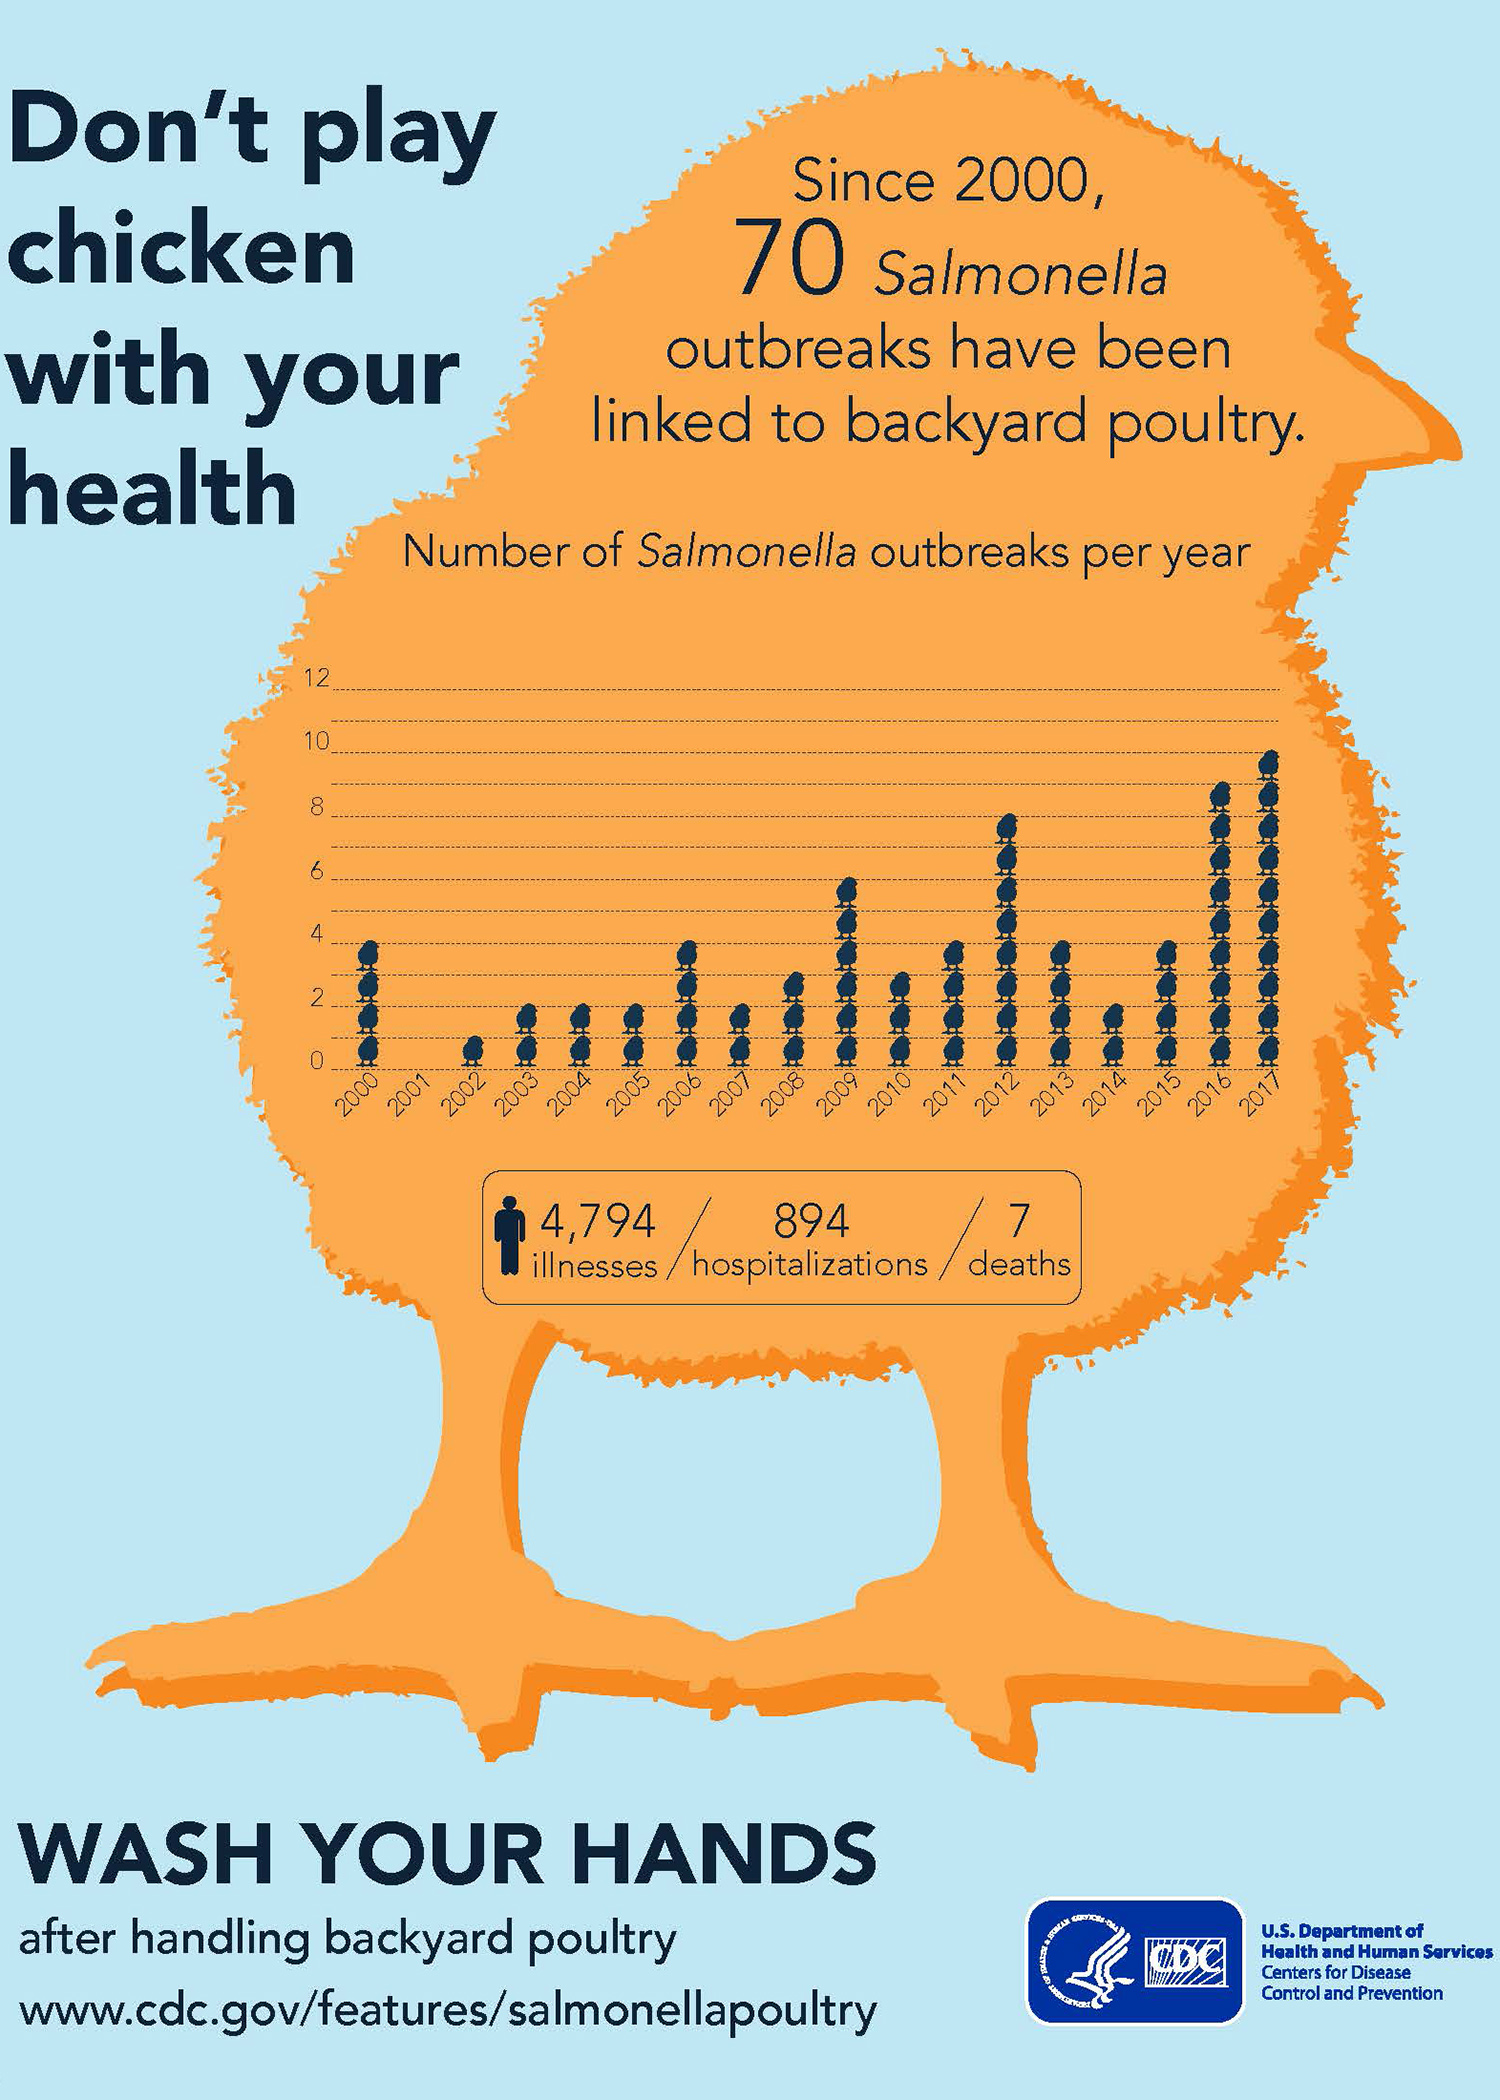 An illustration depicts a large yellow chick with a graph showing the number of Salmonella outbreaks since 2000 and includes text instructions to wash hands after handling backyard poultry.